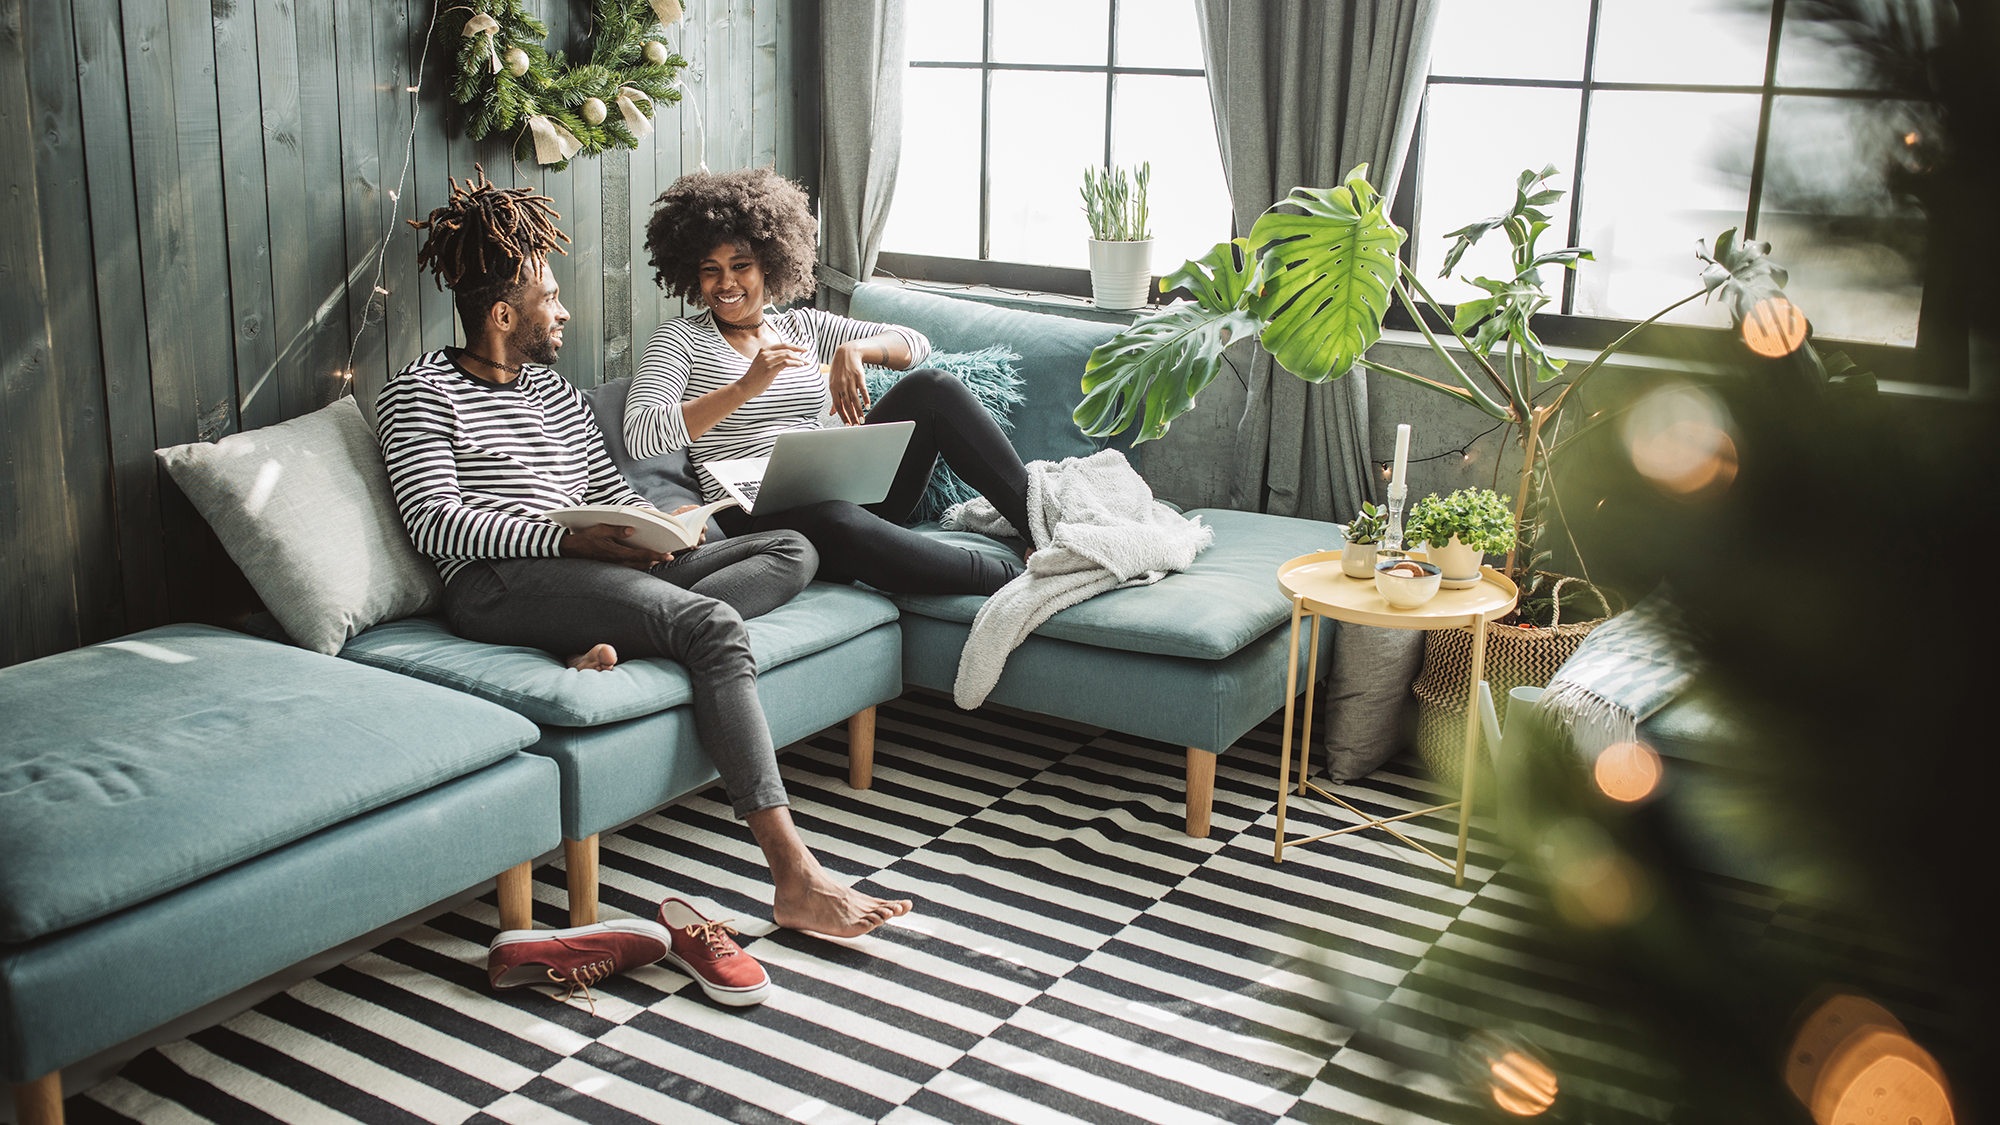 Two people sitting on a couch smiling - Upstart Personal Loans